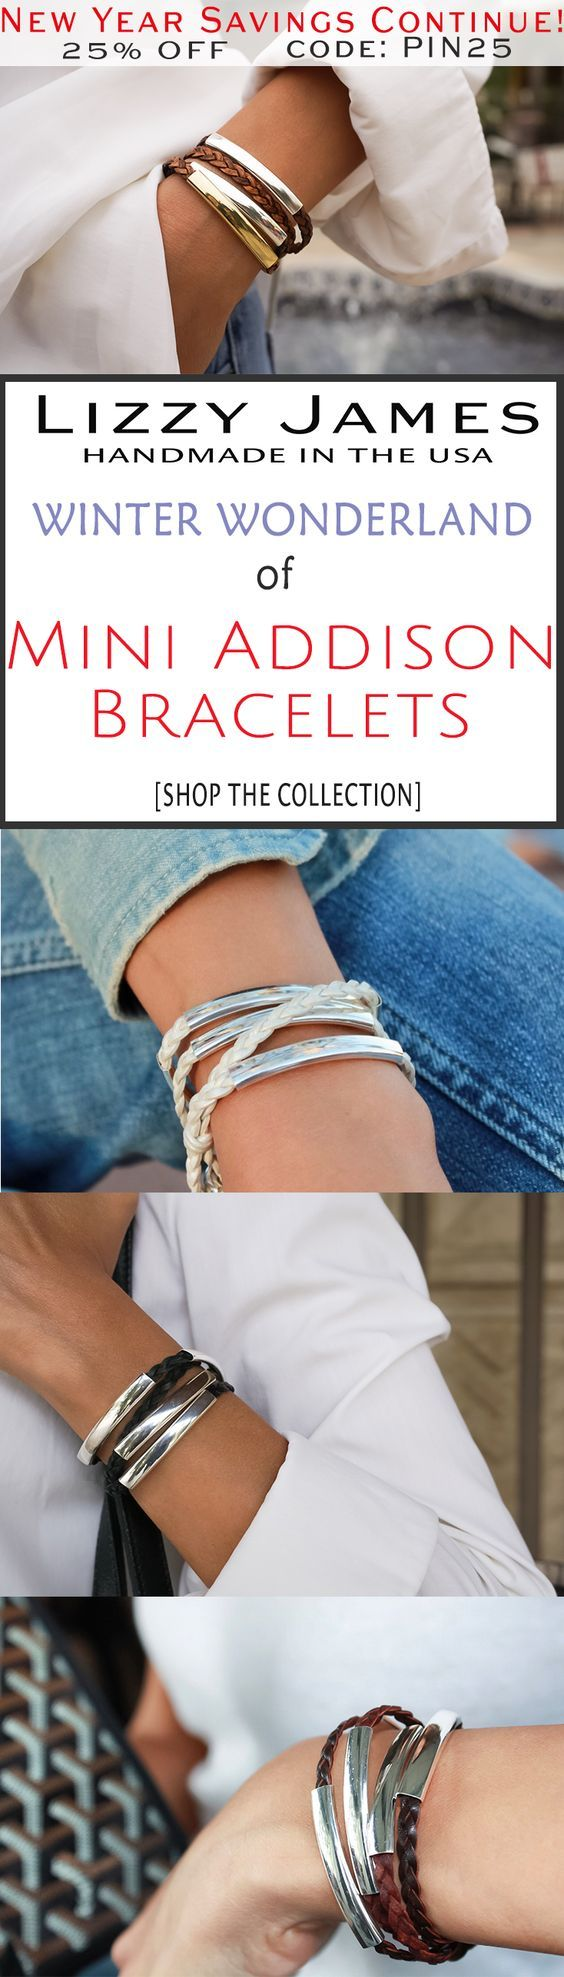 New Year Sale Continues! 25% OFF sale + FREE Shipping for all 1st time buyers with coupon code PIN25 - let Lizzy James Jewelry help you stay in style in the New Year! Featuring braided leather wrap bracelets, our designs fit all wrist sizes from petite to plus size.  Proud to be made in the USA!  #lizzyjames